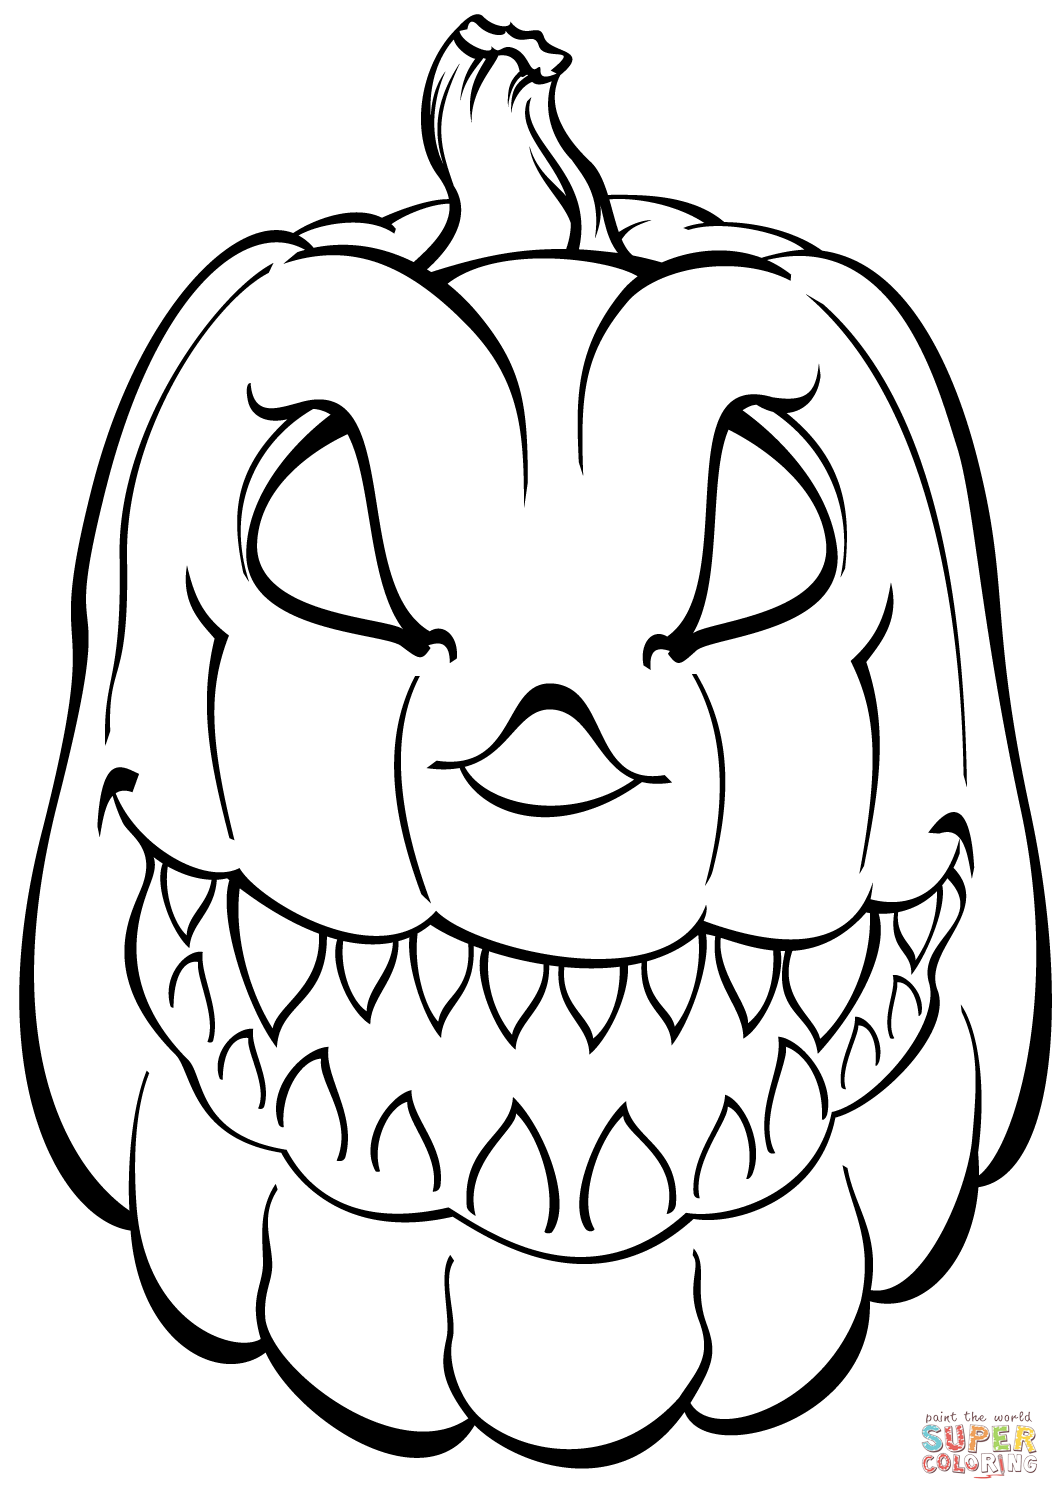 coloring page of a pumpkin scary pumpkin coloring page free printable coloring pages a pumpkin coloring of page